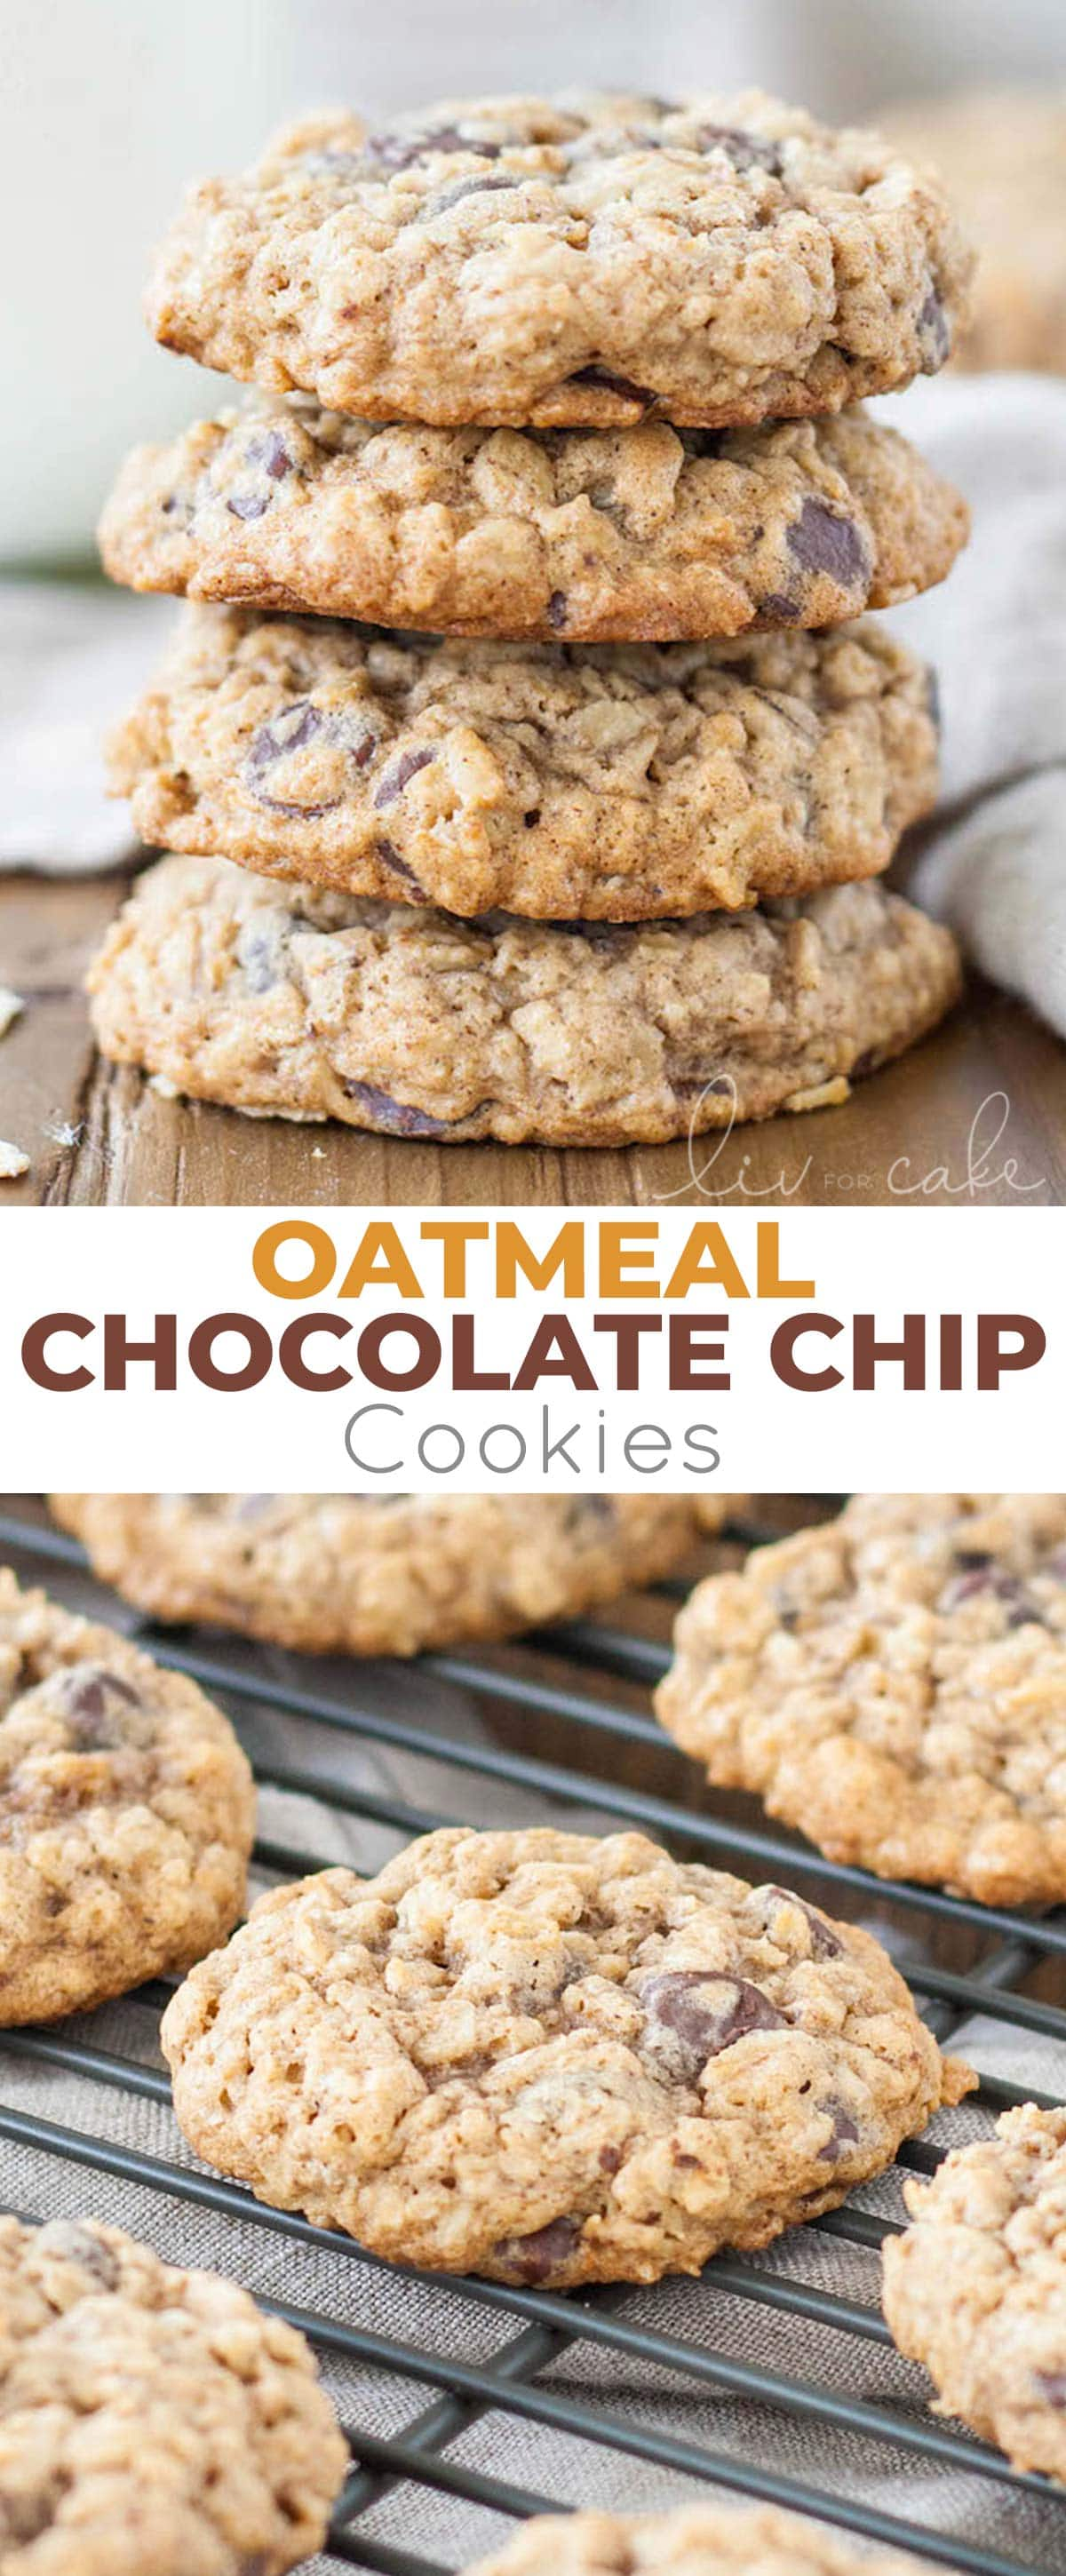 Oatmeal Chocolate Chip Cookie photo collage